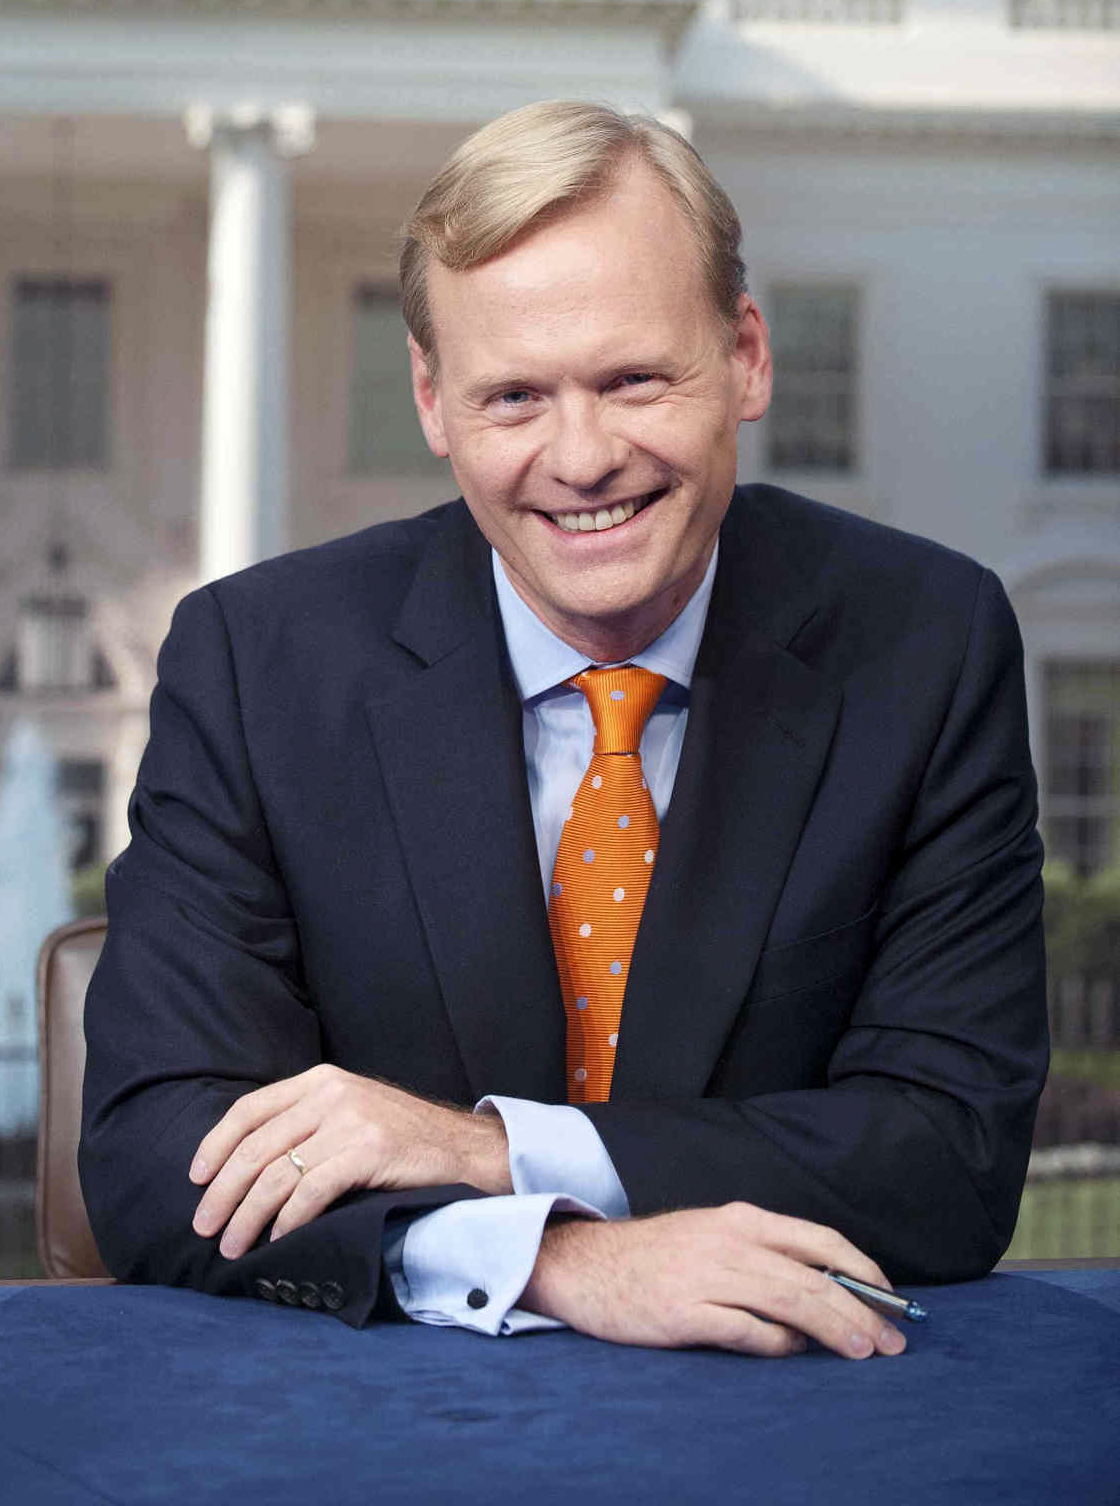 This 2012 photo provided by CBS News shows CBS News political director John Dickerson, in Washington. Dickerson will replace the retiring Bob Schieffer as moderator of  Face the Nation,  Schieffer announced Sunday, April 12, 2015